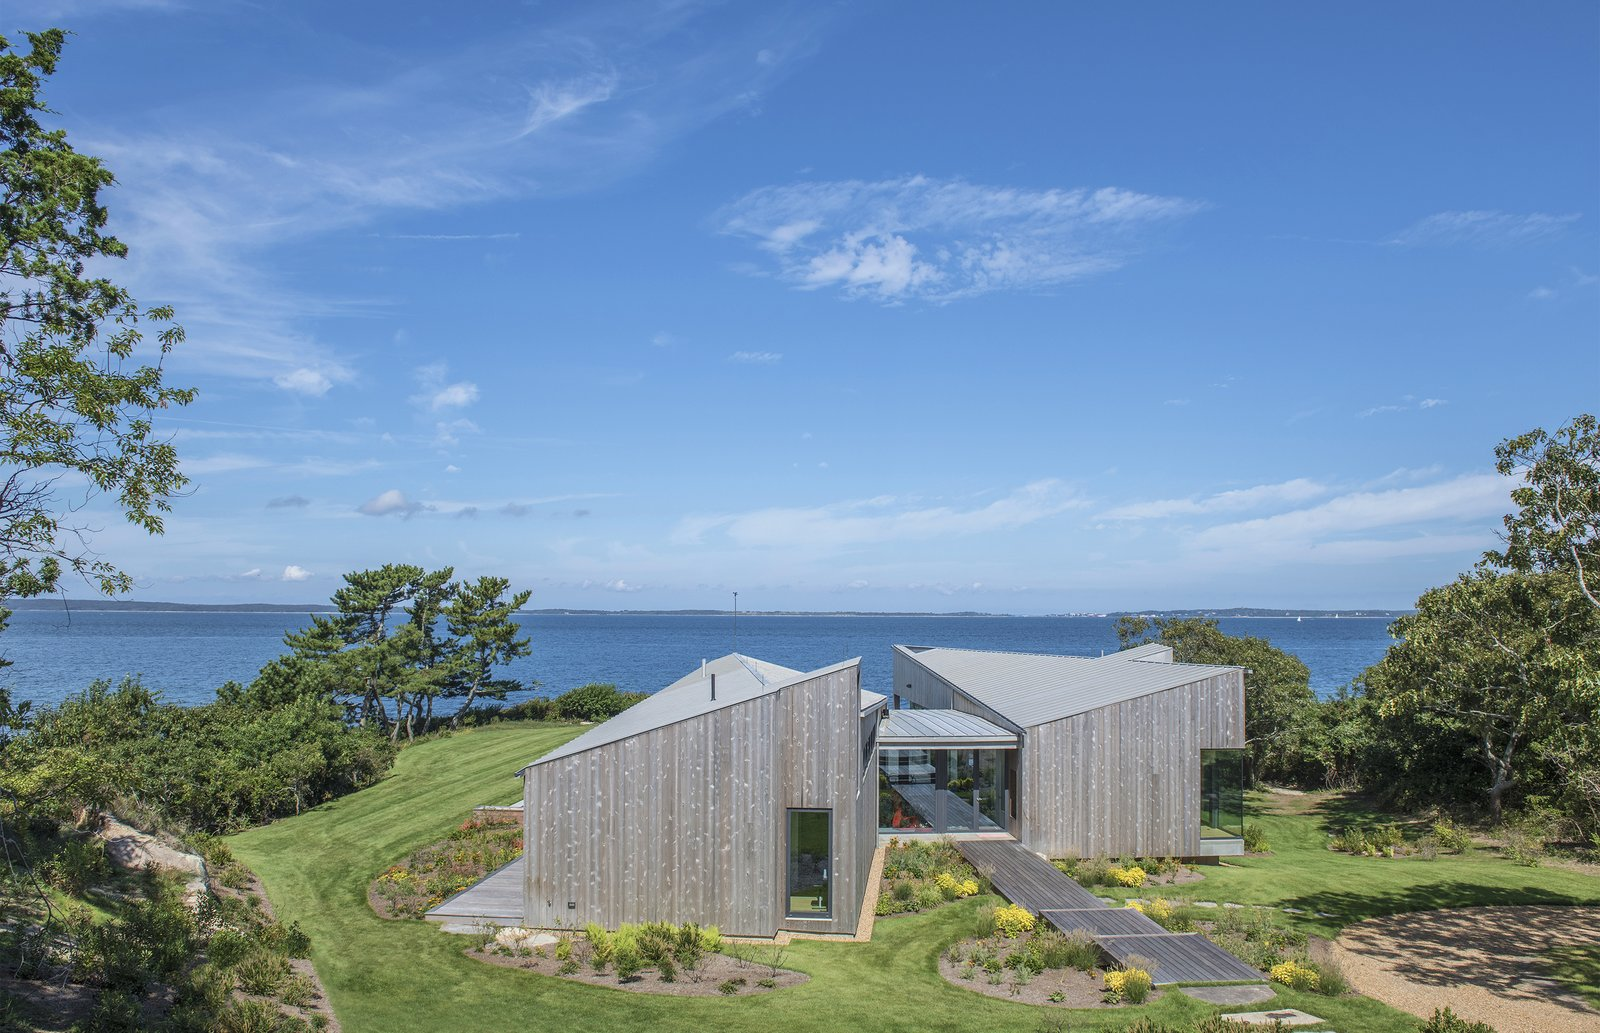 Approached from the driveway, the home is accessed along a stone path that turns into a series of wide, wooden steps. The home's angular roofline is a dramatic form against the natural backdrop, but the wood cladding connects it to the site.